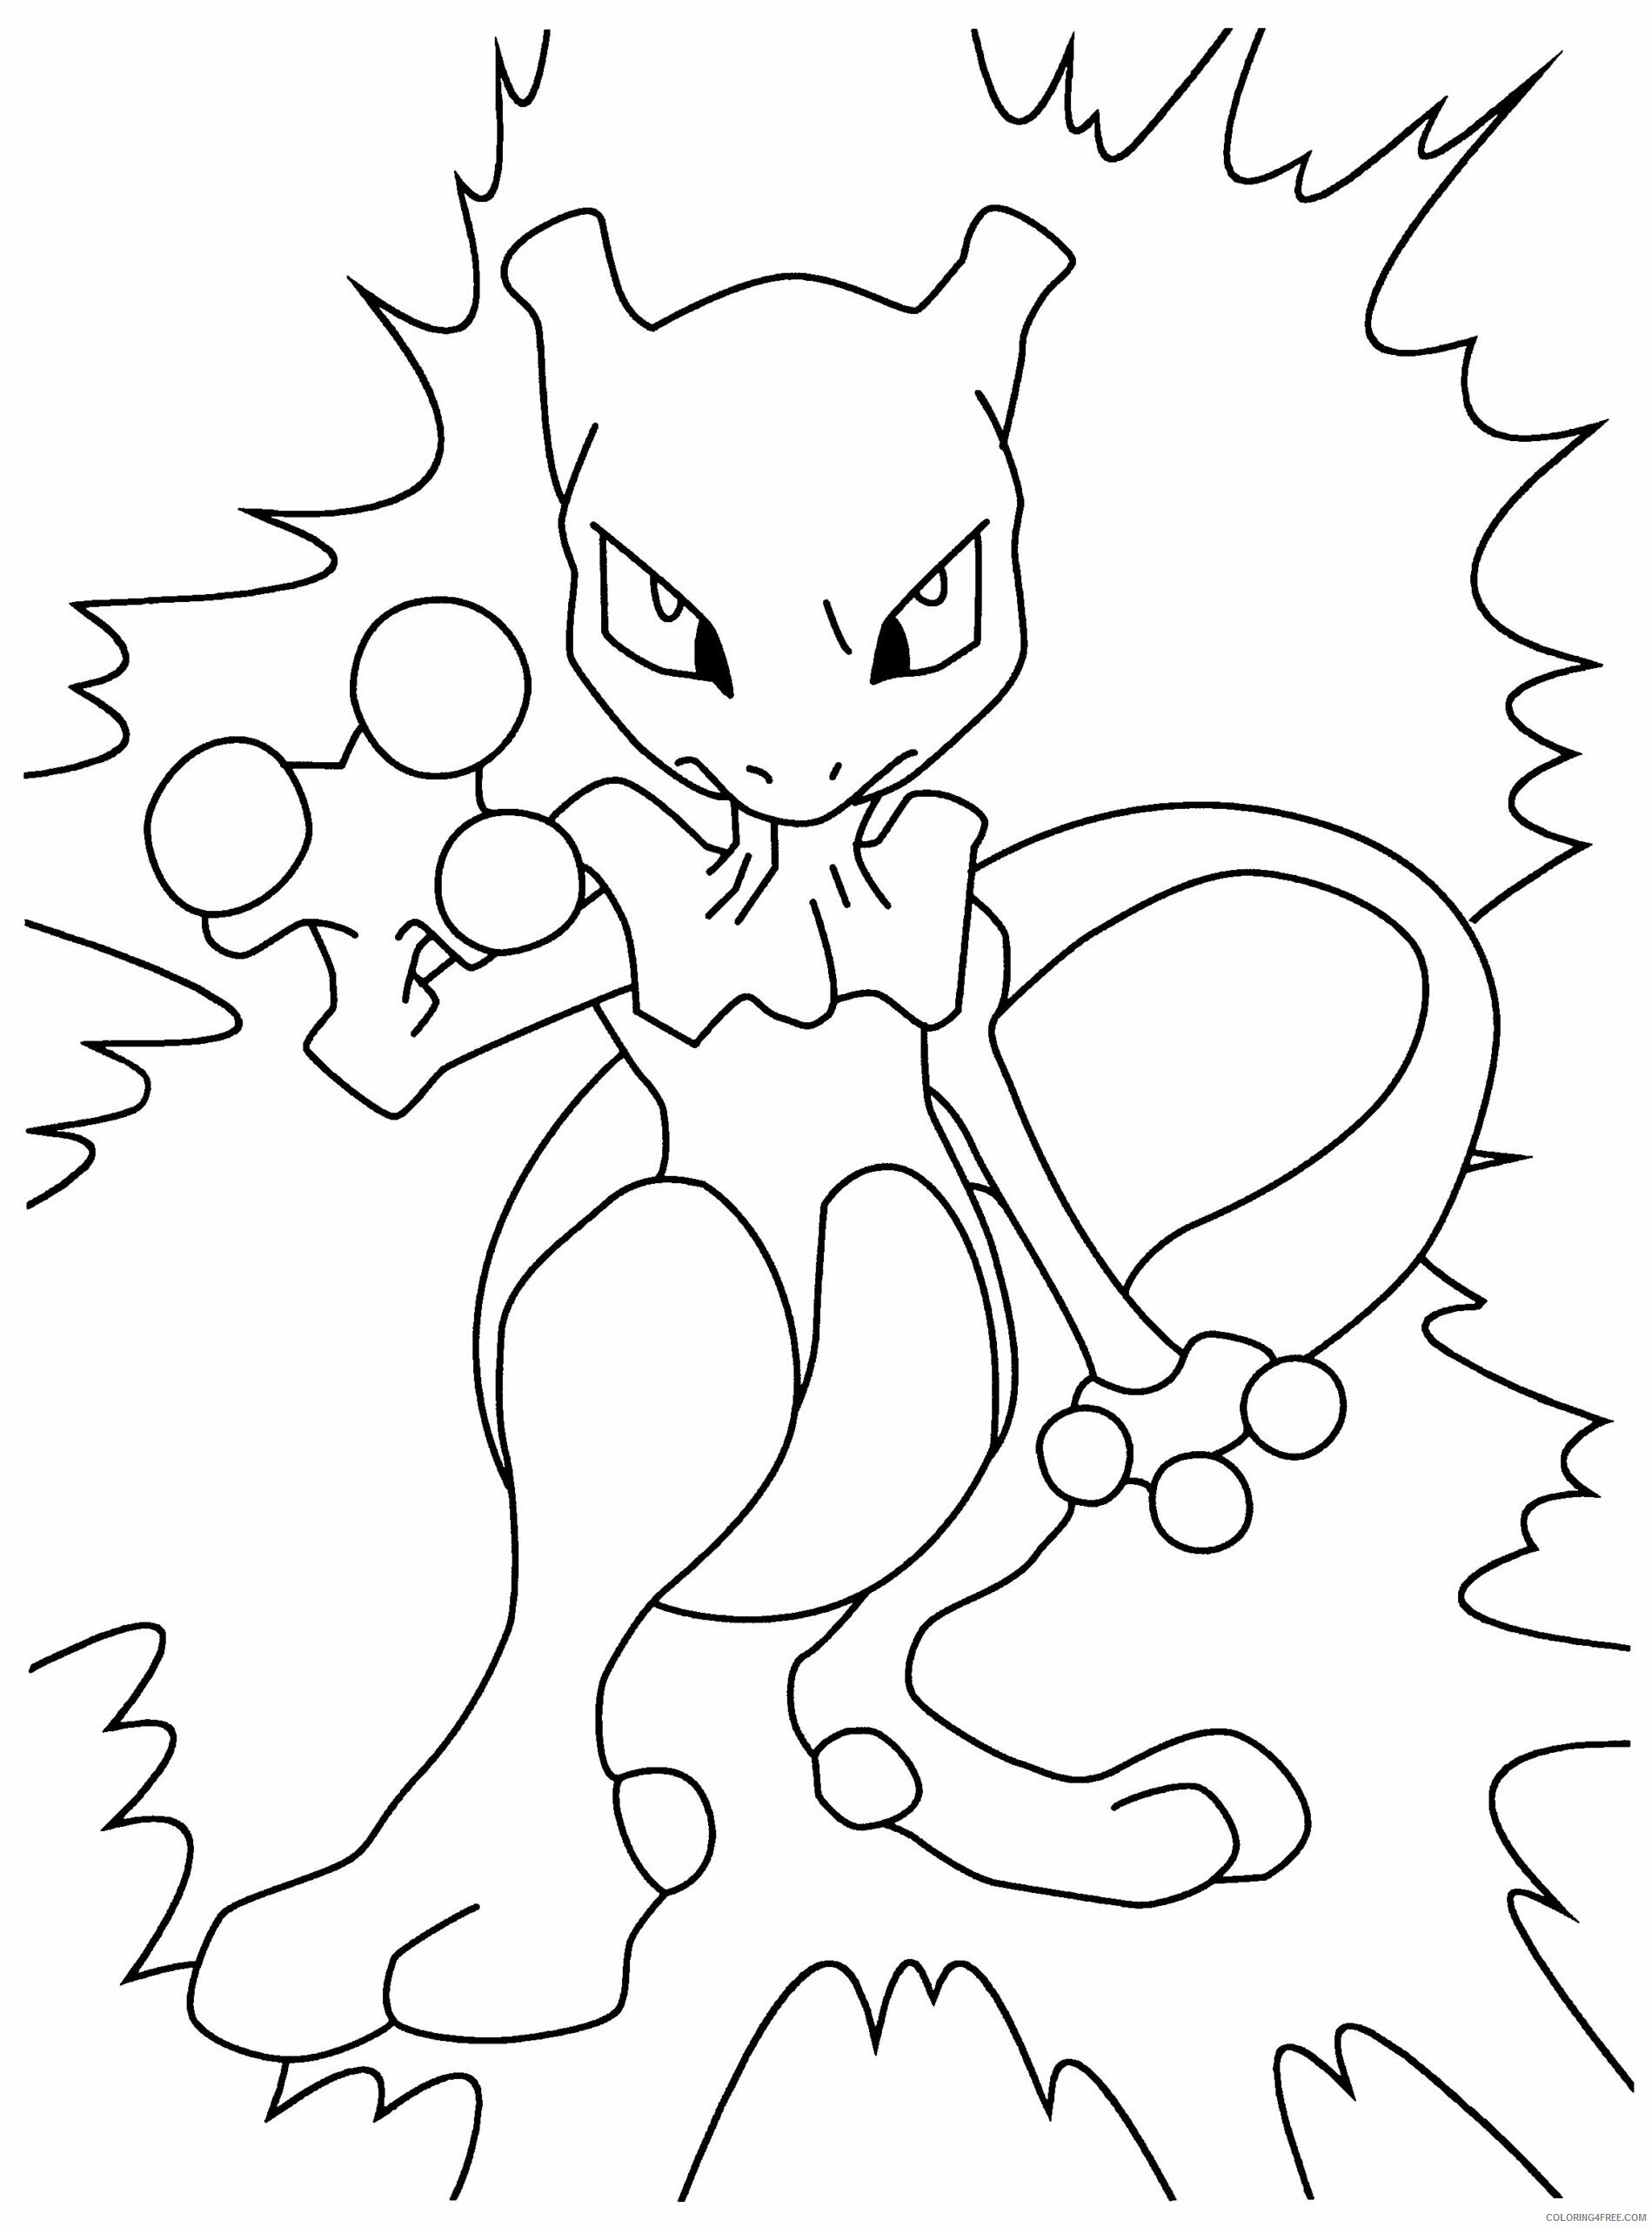 Pokemon Printable Coloring Pages Anime Mewtwo Pokemon 2021 061 Coloring4free Coloring4free Com